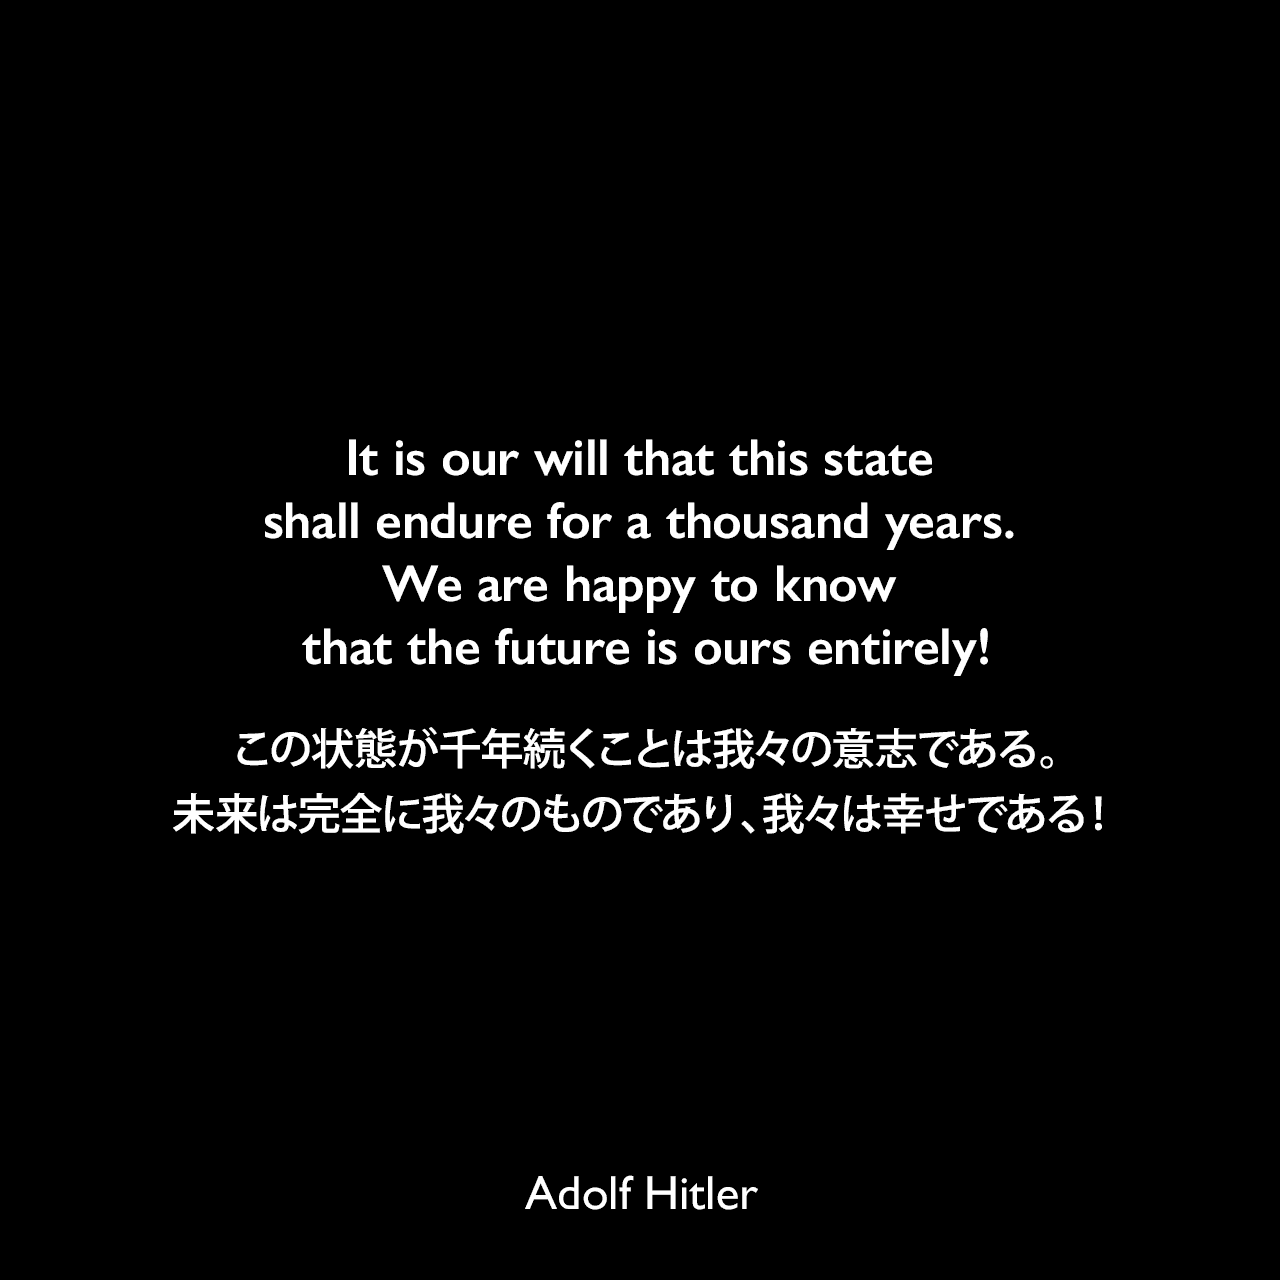 It is our will that this state shall endure for a thousand years. We are happy to know that the future is ours entirely!この状態が千年続くことは我々の意志である。未来は完全に我々のものであり、我々は幸せである!- 映画「意志の勝利」よりAdolf Hitler